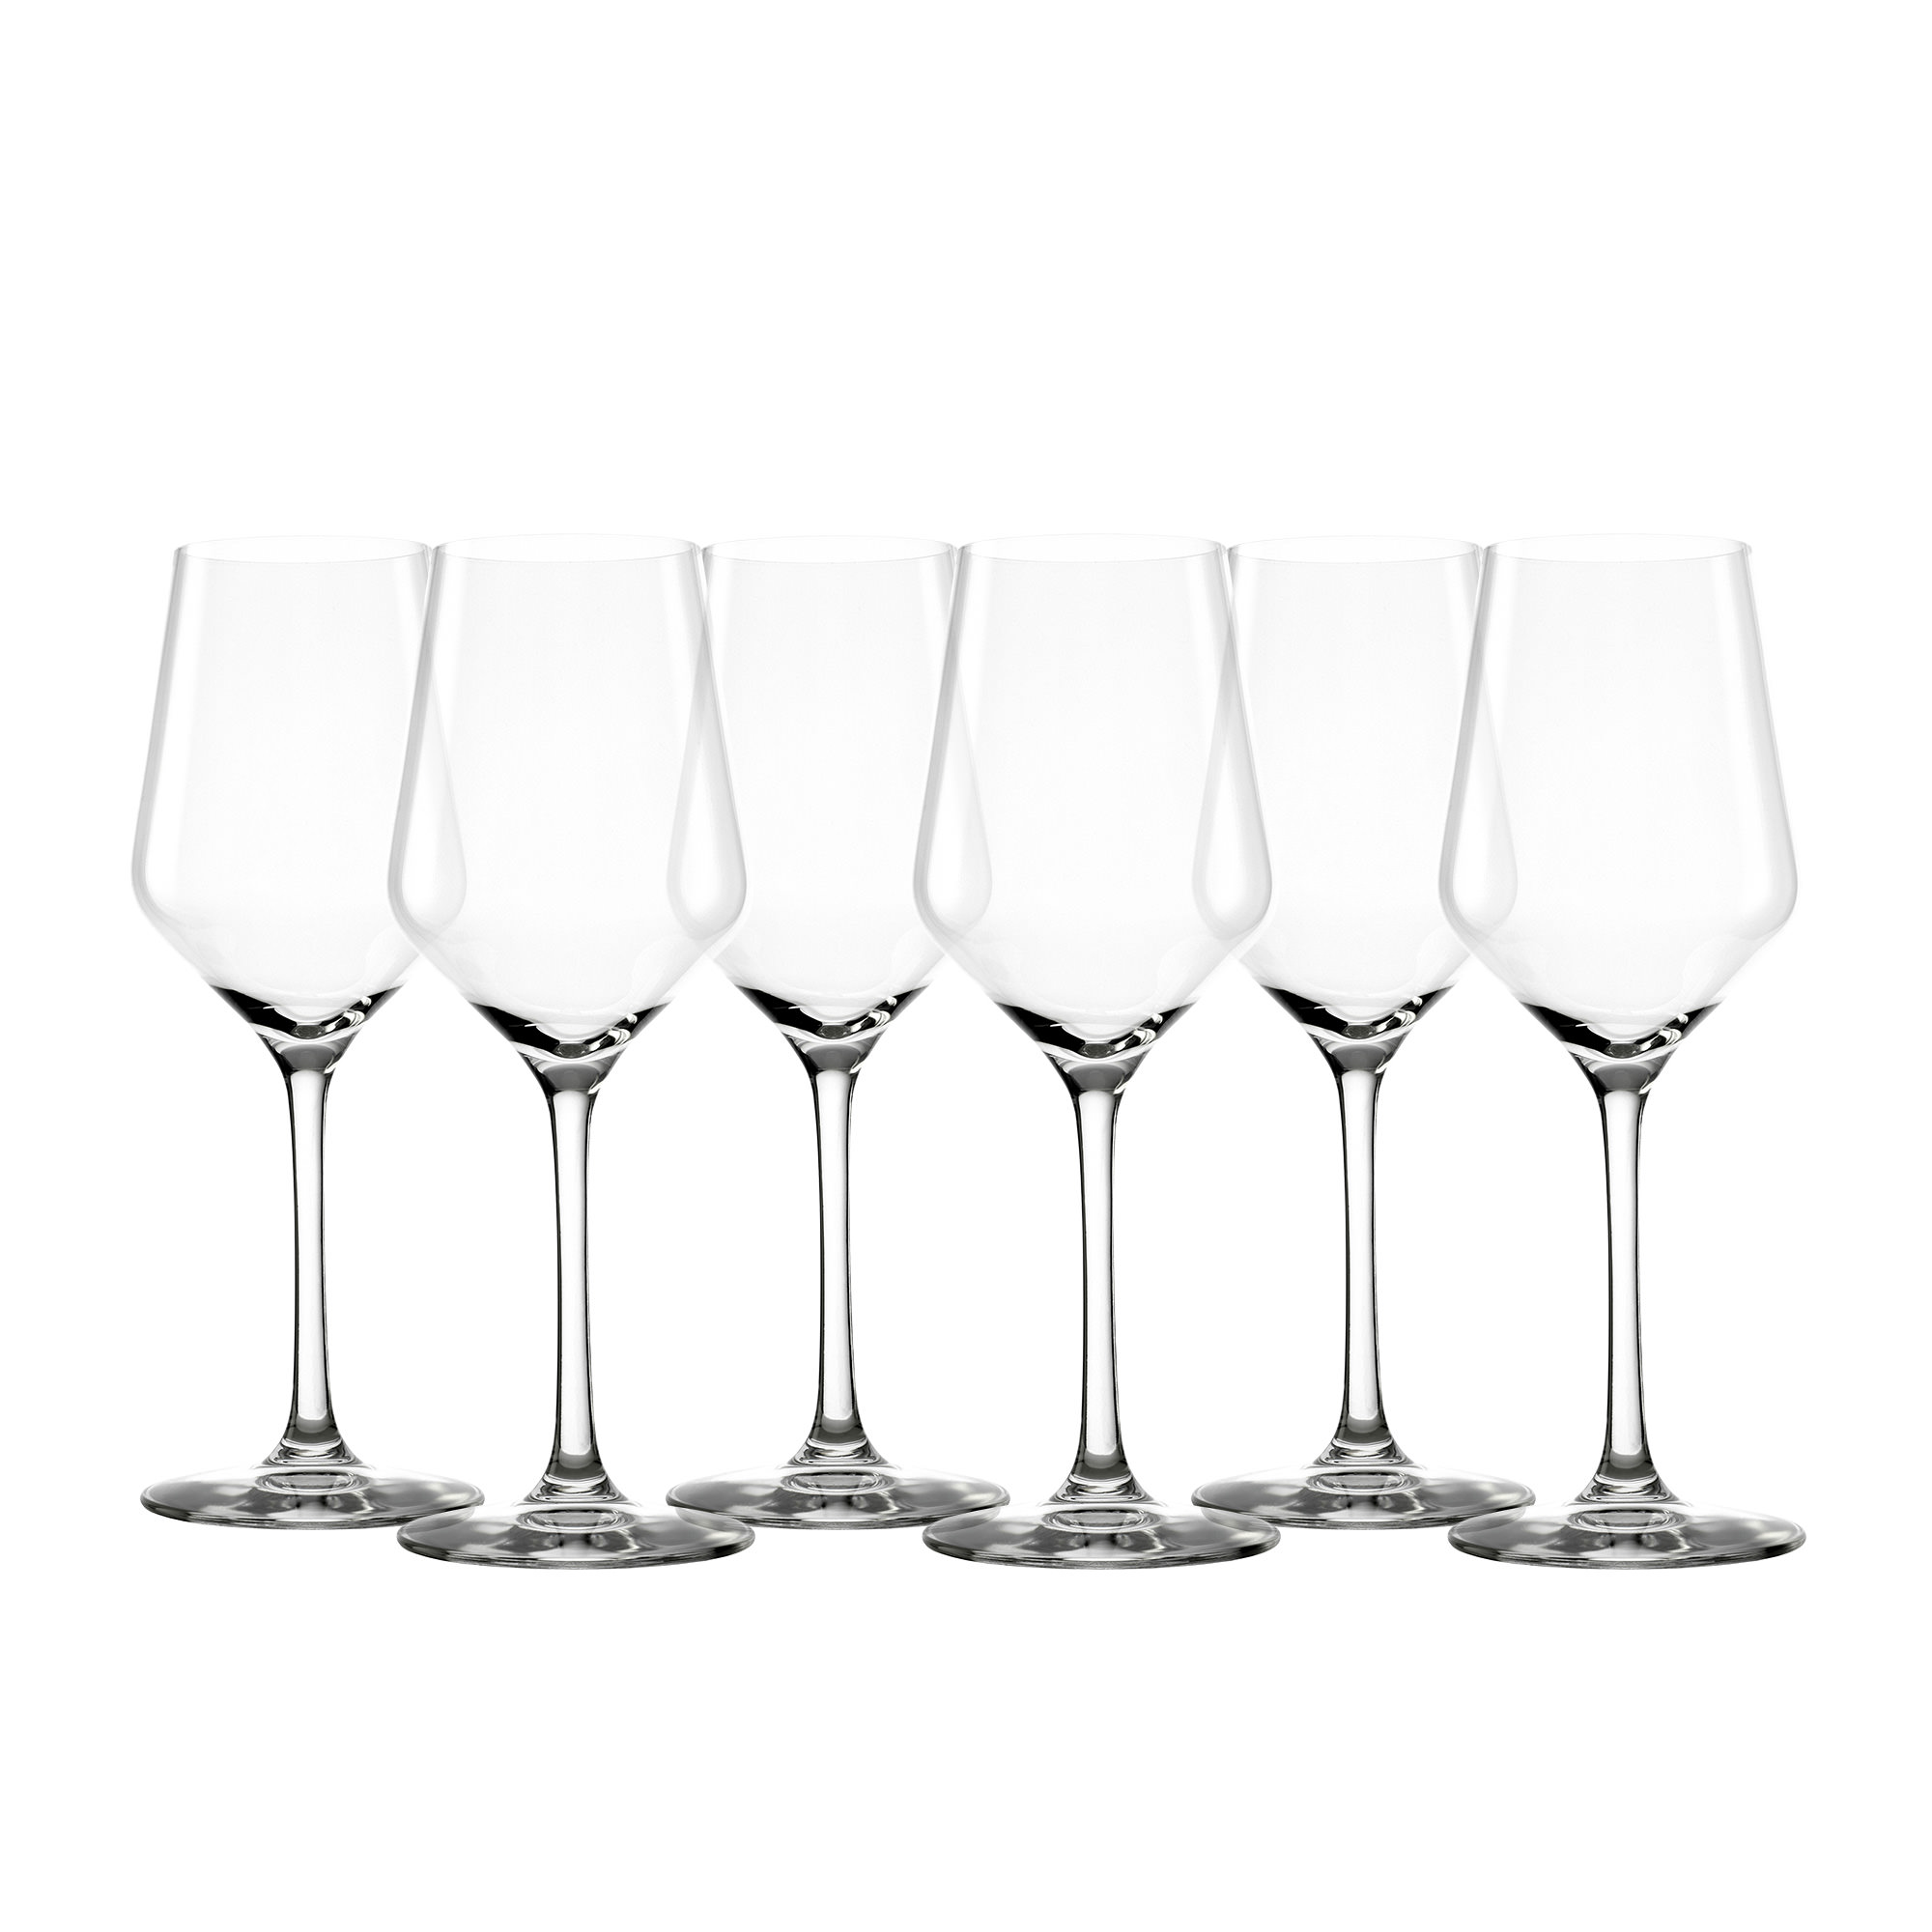 Noritake IVV Tasting Hour 6pc Red Wine Glass Set 490ml